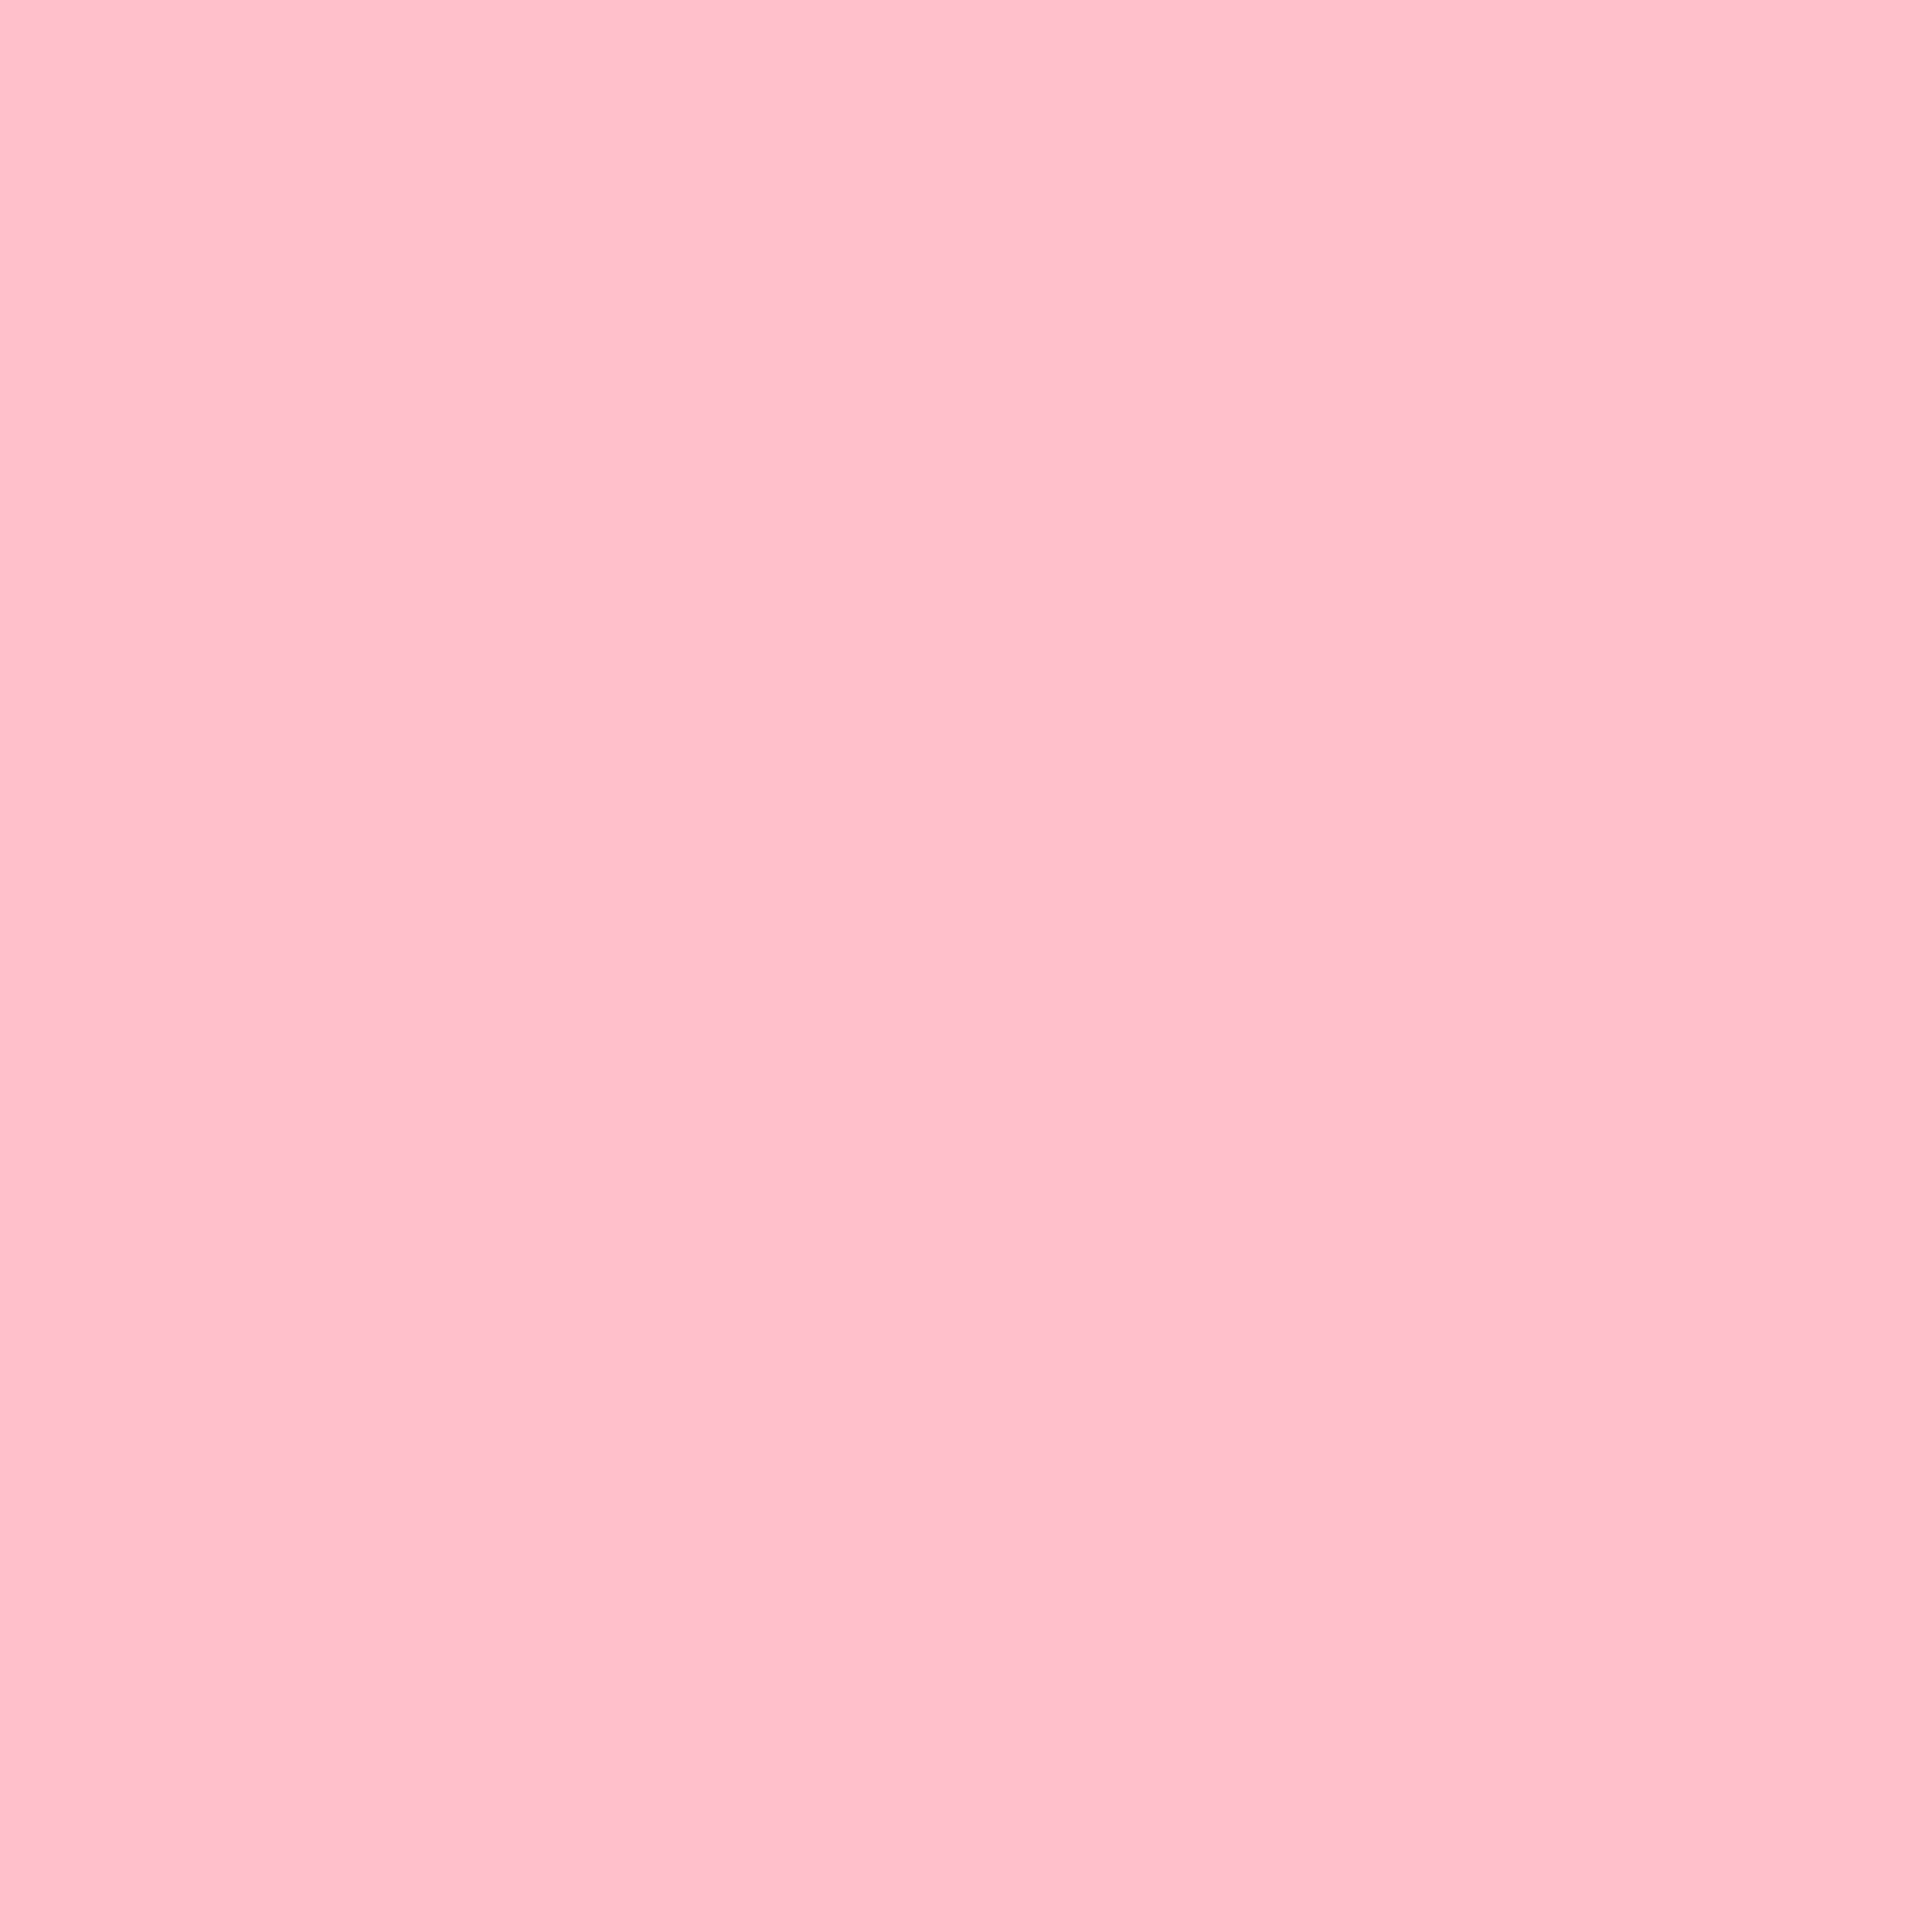 2732x2732 Pink Solid Color Background